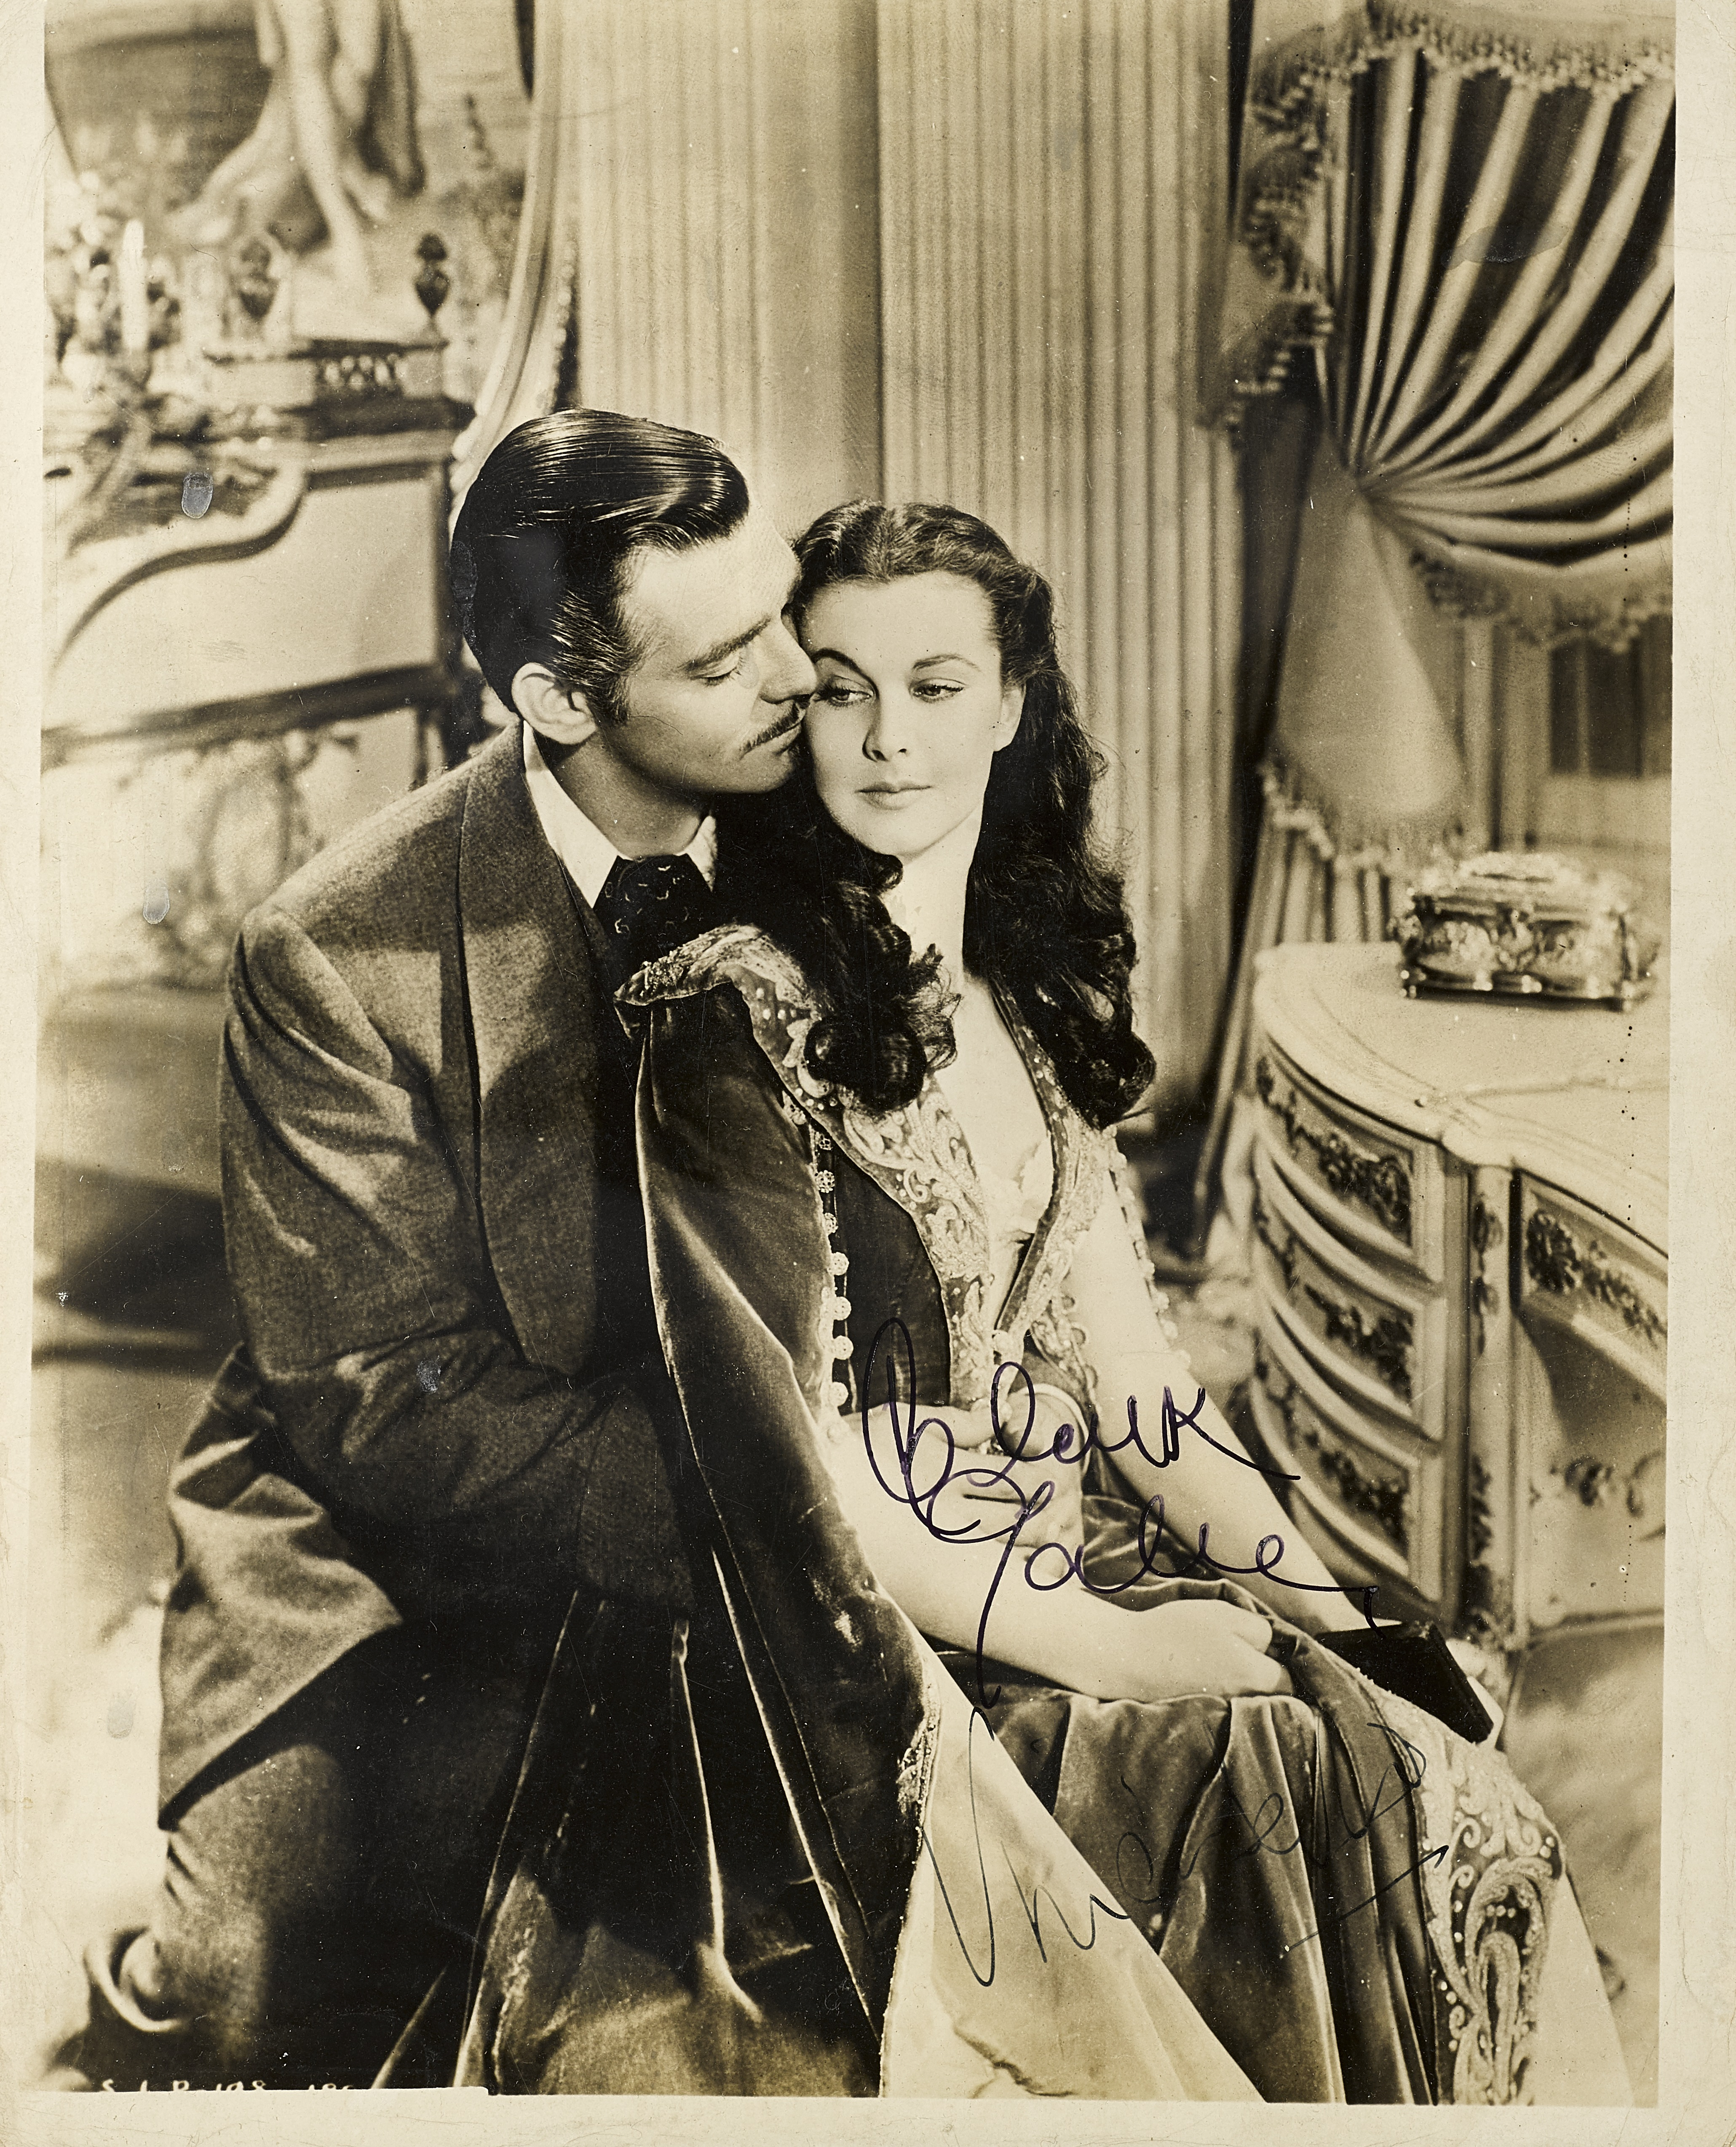 Lot 1058 - A Clark Gable and Vivien Leigh signed photograph from Gone With the Wind